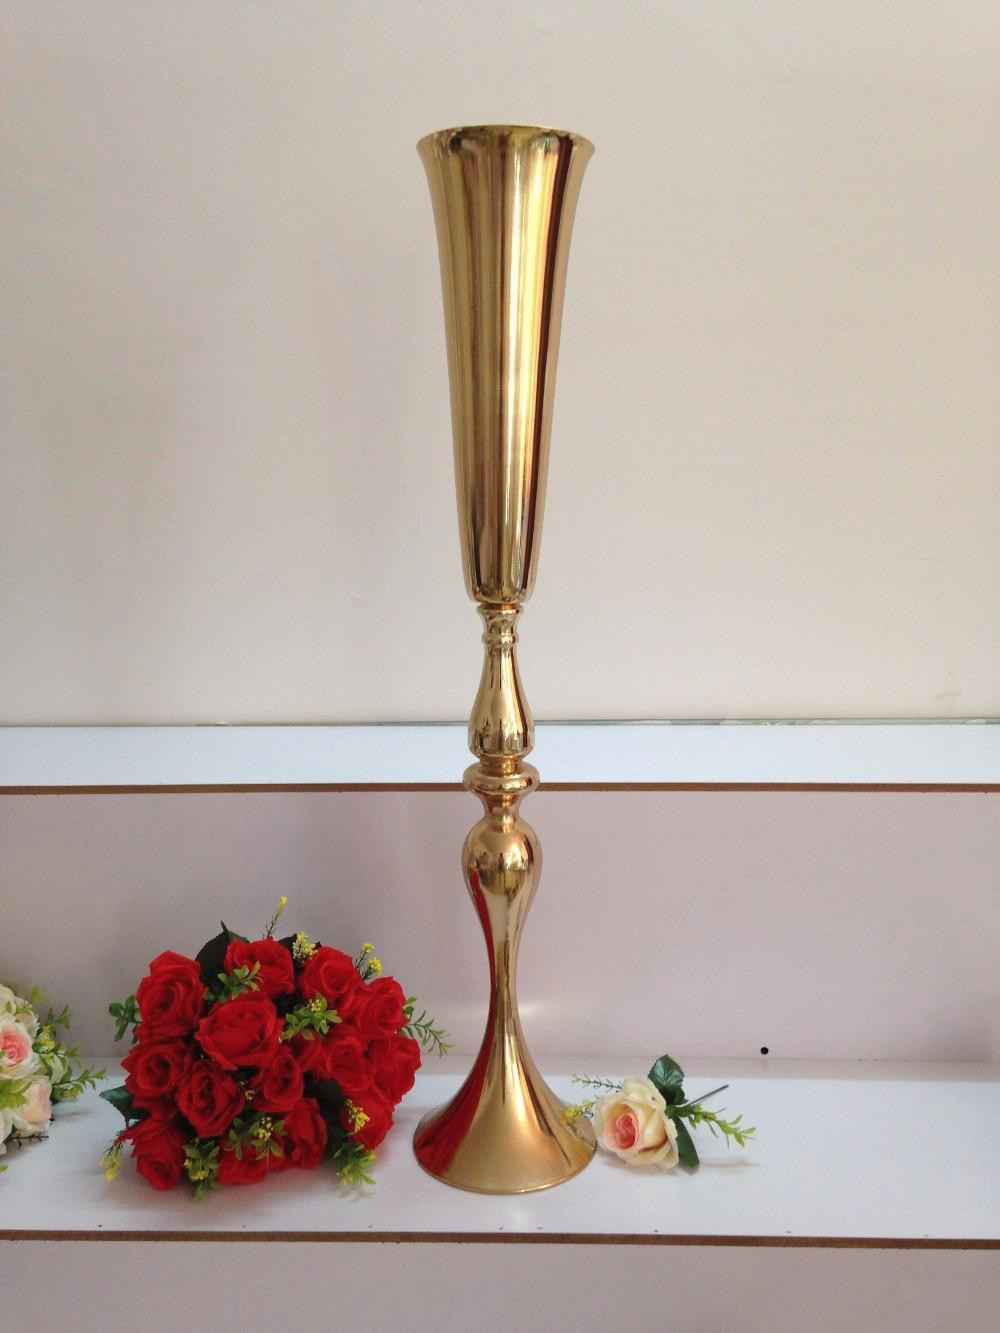 large gold mercury glass vases of gold tall vases gallery dsc7285h vases gold pedestal vase glass 4 8 with regard to gold tall vases photos faux crystal candle holders alive vases gold tall jpgi 0d cheap in